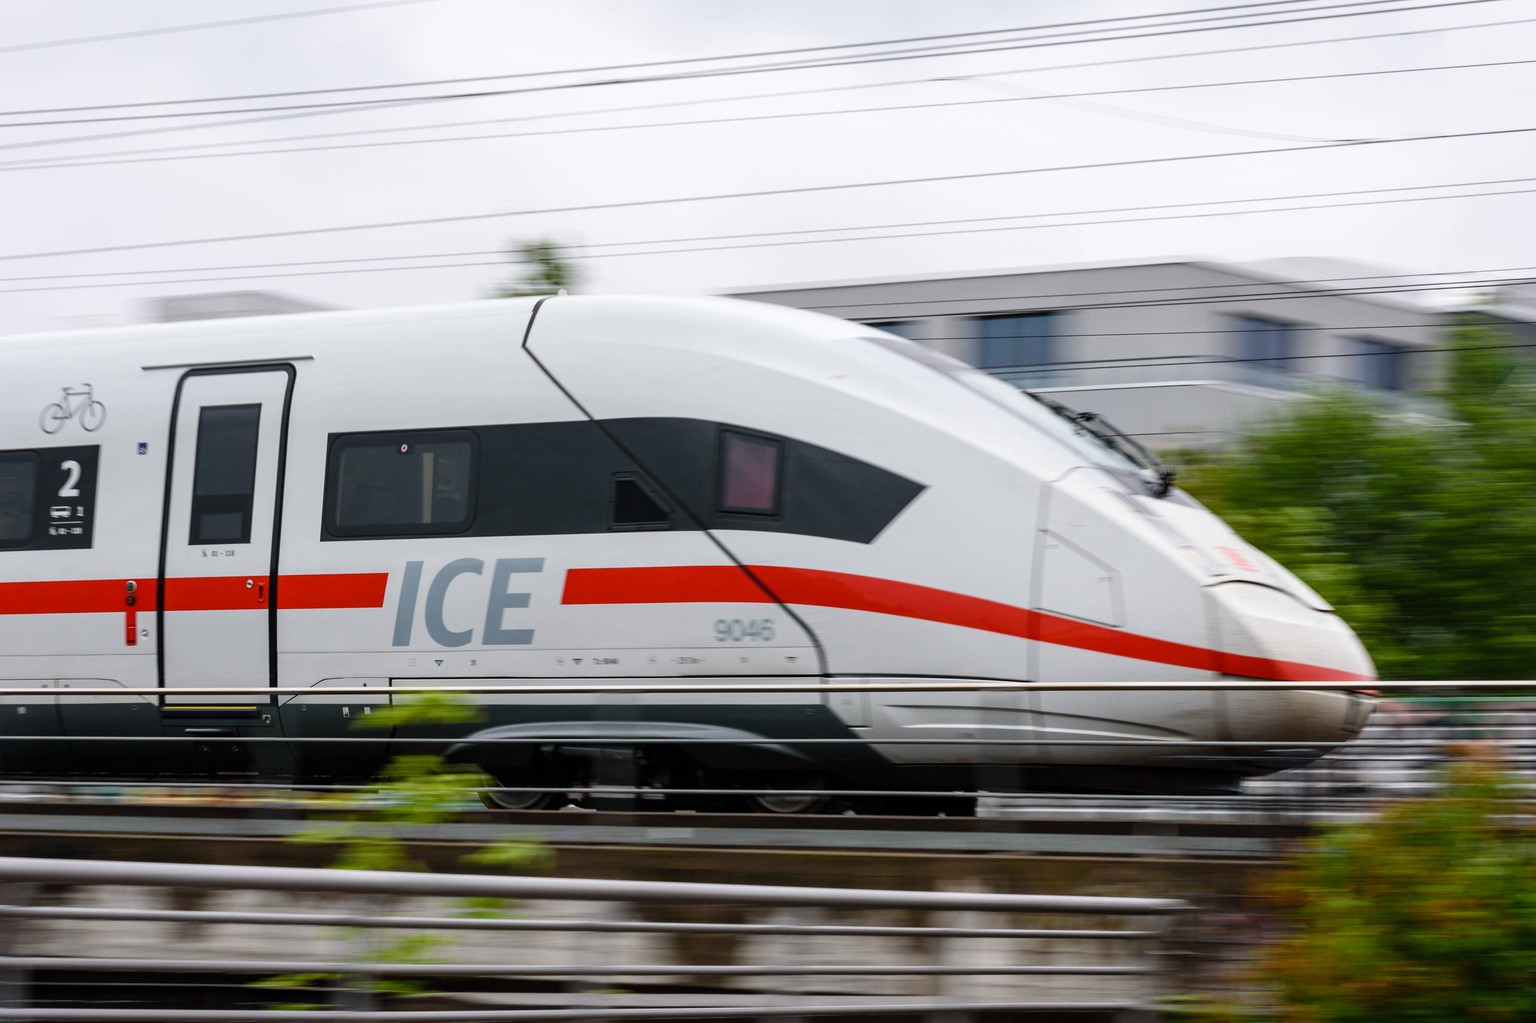 May 11, 2020, Berlin, Berlin, Germany: A German Intercity Express commonly known as ICE trainset can be seen in Berlin in rainy weather. Plans of the Ministry of Finance and the Ministry of Transport suggest that the federal government plans to support the Deutsche Bahn AG in the Corona crisis with financial support worth billions. The plan is to increase equity capital and raise the debt limit of the federal corporation. In return, the railway promised massive savings in personnel and material costs. Berlin Germany - ZUMAs172 20200511zaps172008 Copyright: xJanxScheunertx